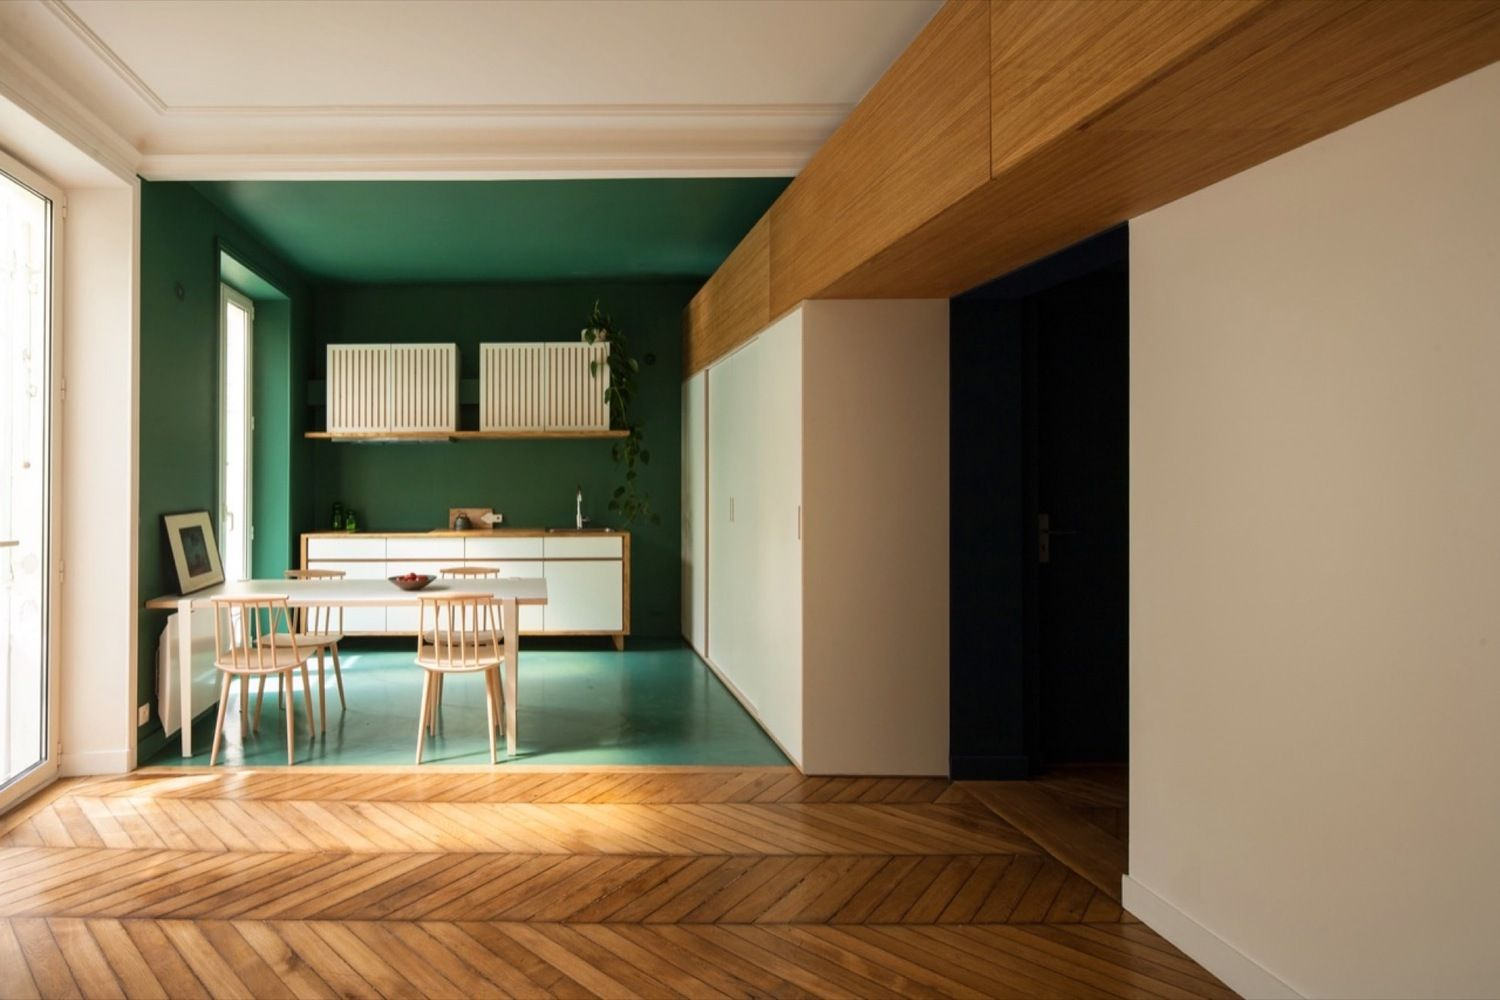 Wonderful Gallery Of Townhouse / Les Ateliers Tristan U0026 Sagitta   1